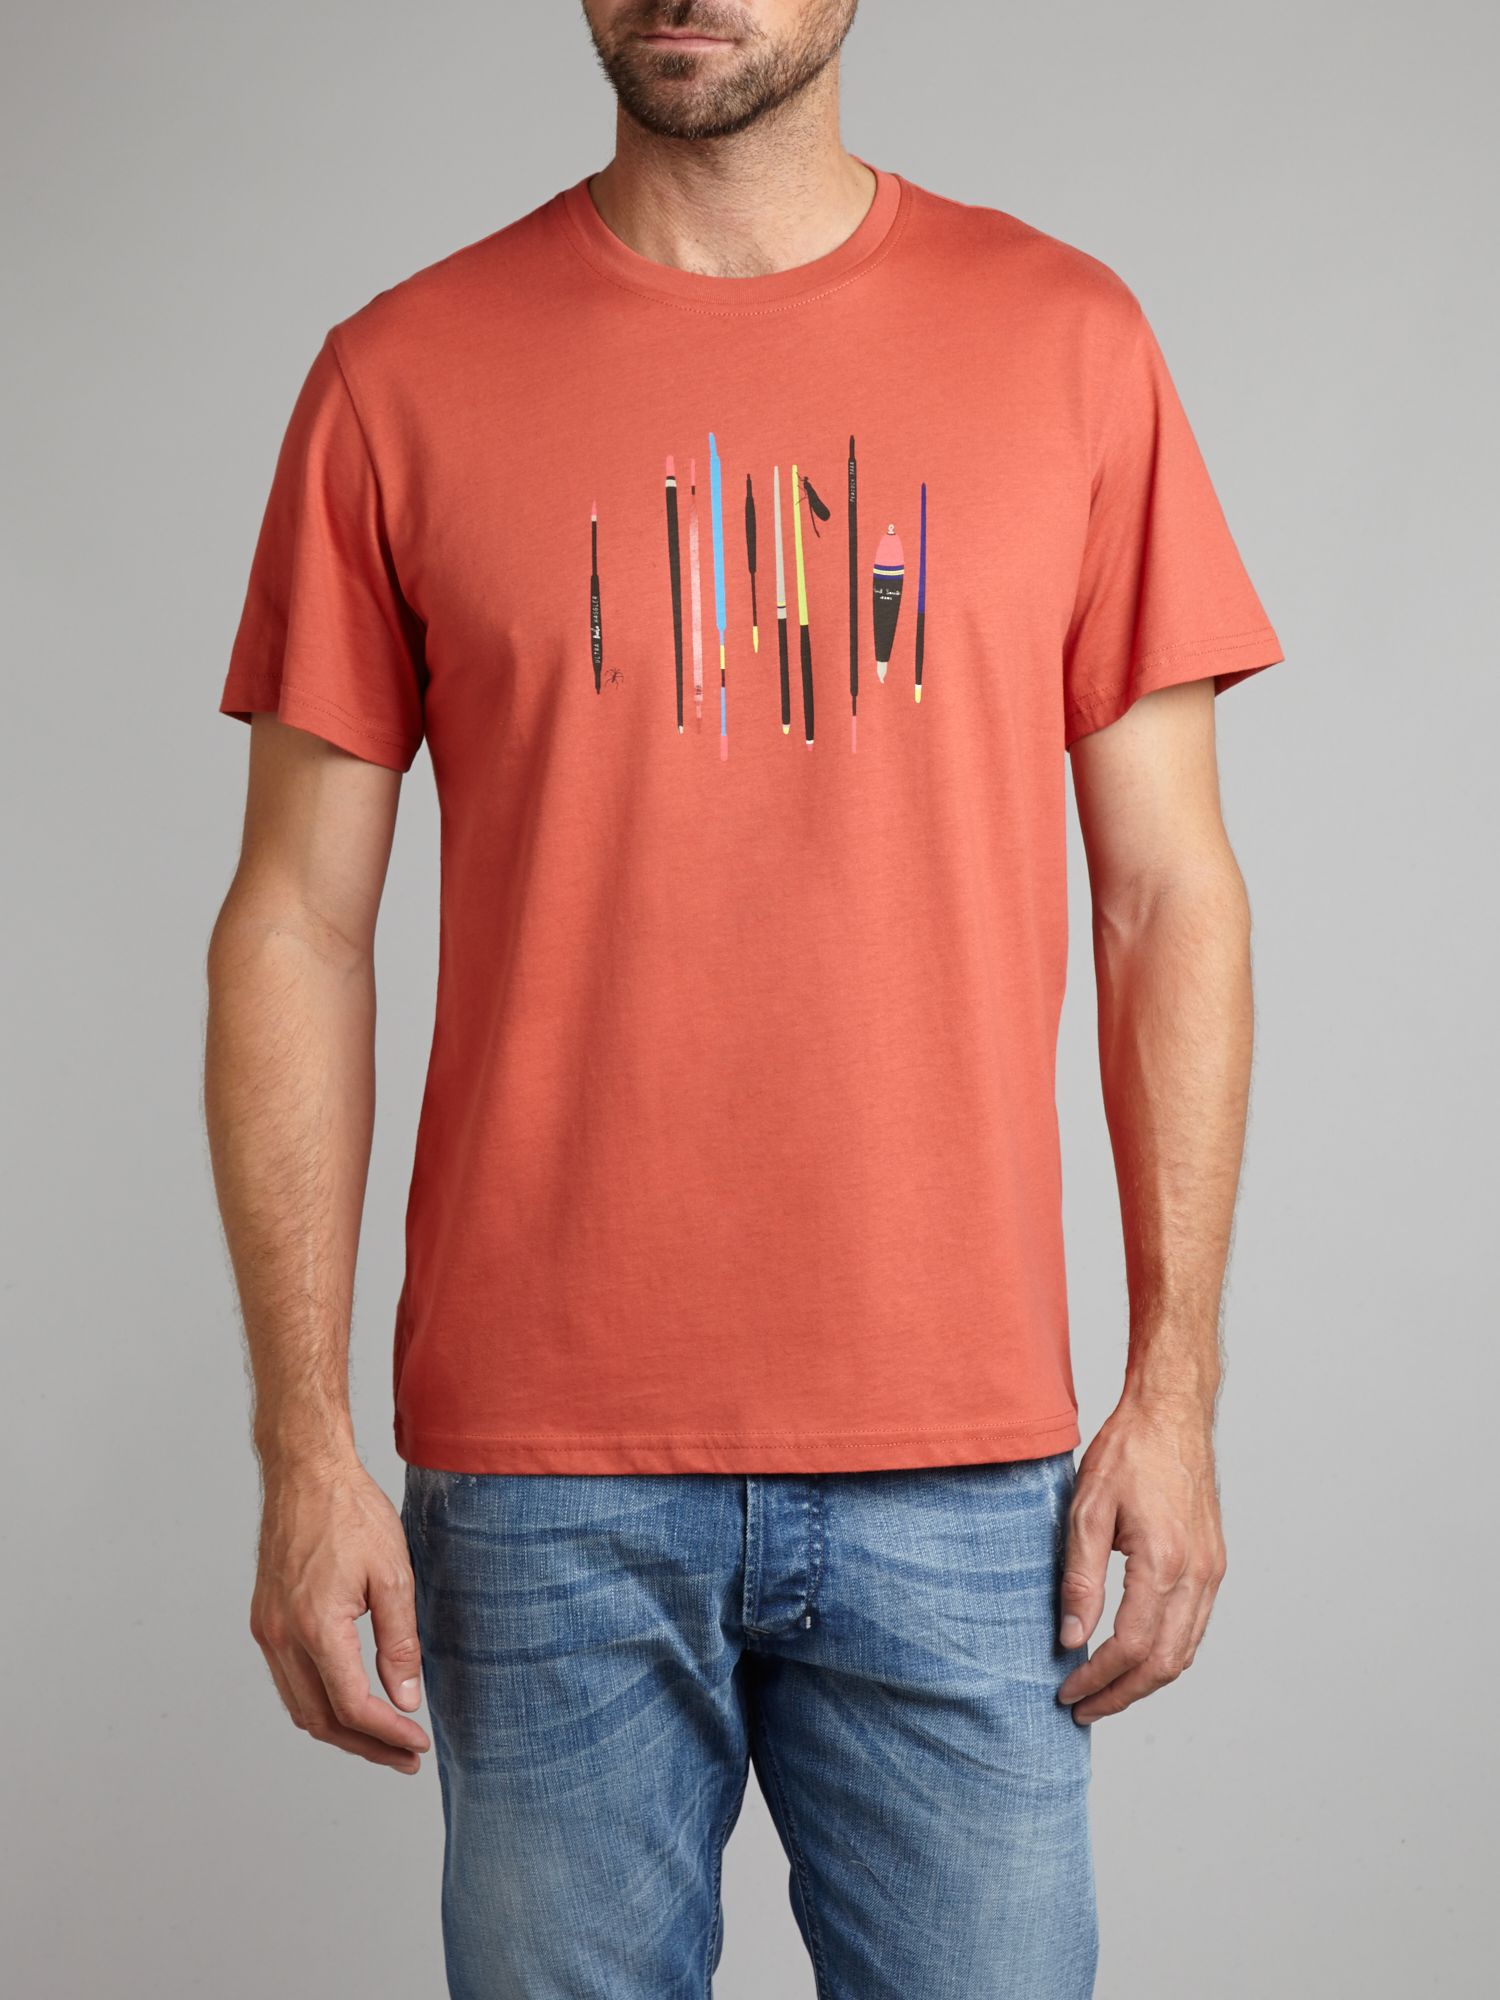 Fishing print t-shirt